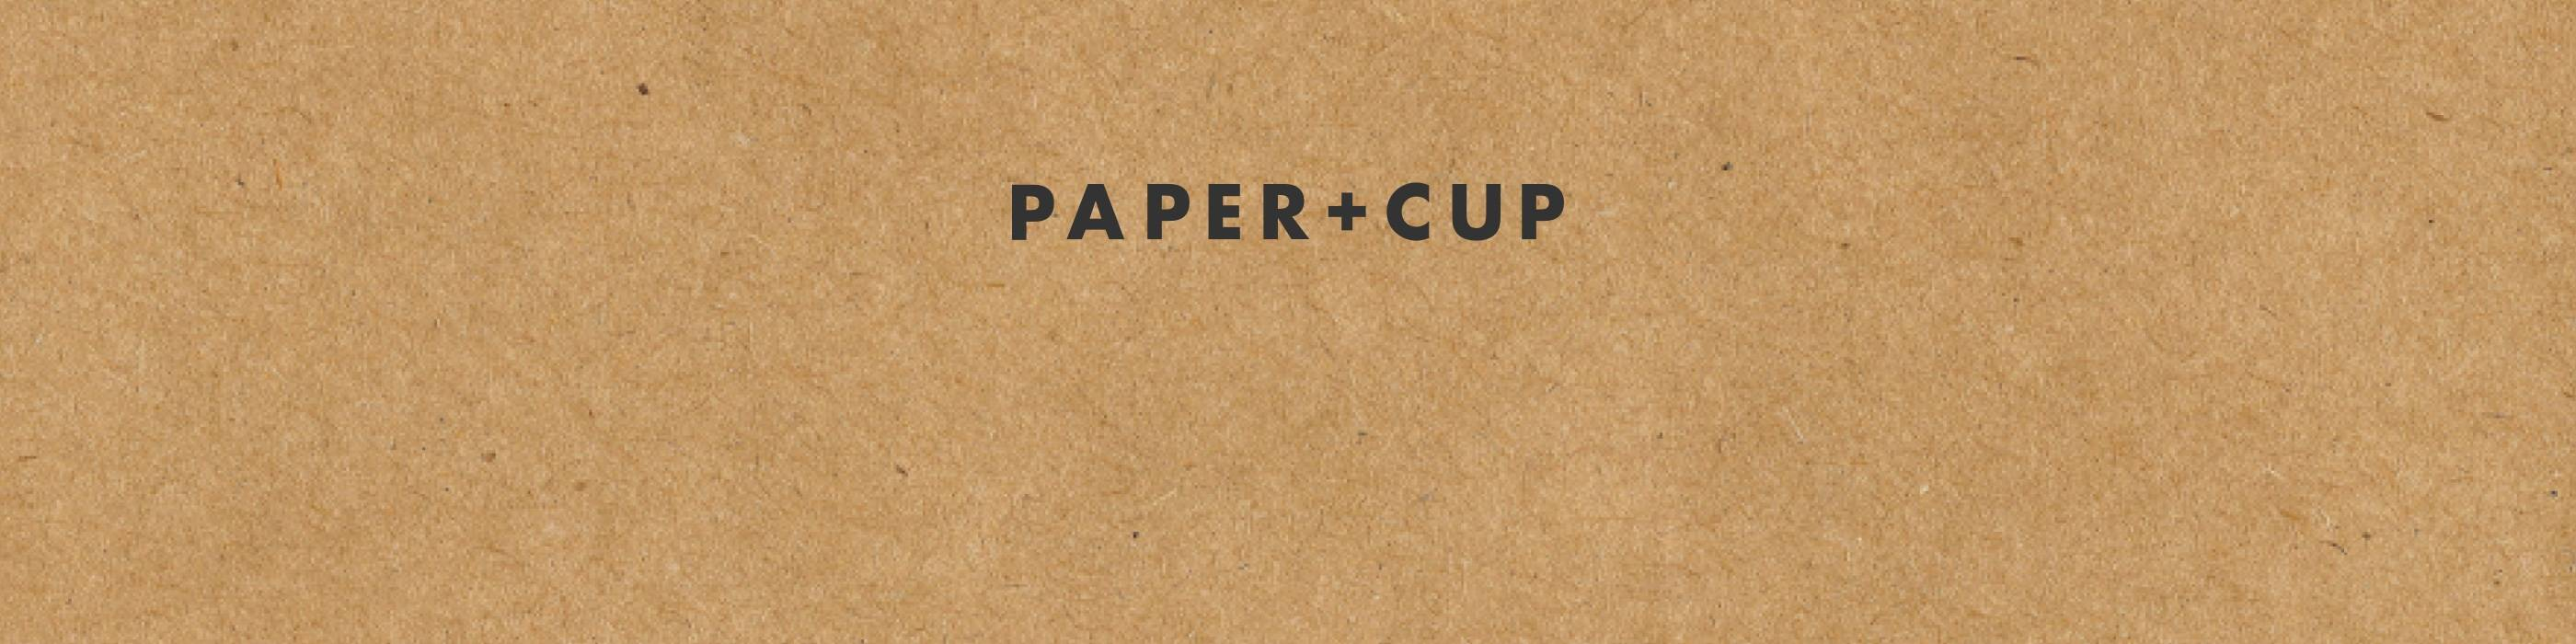 Paper + Cup for Paperless Post